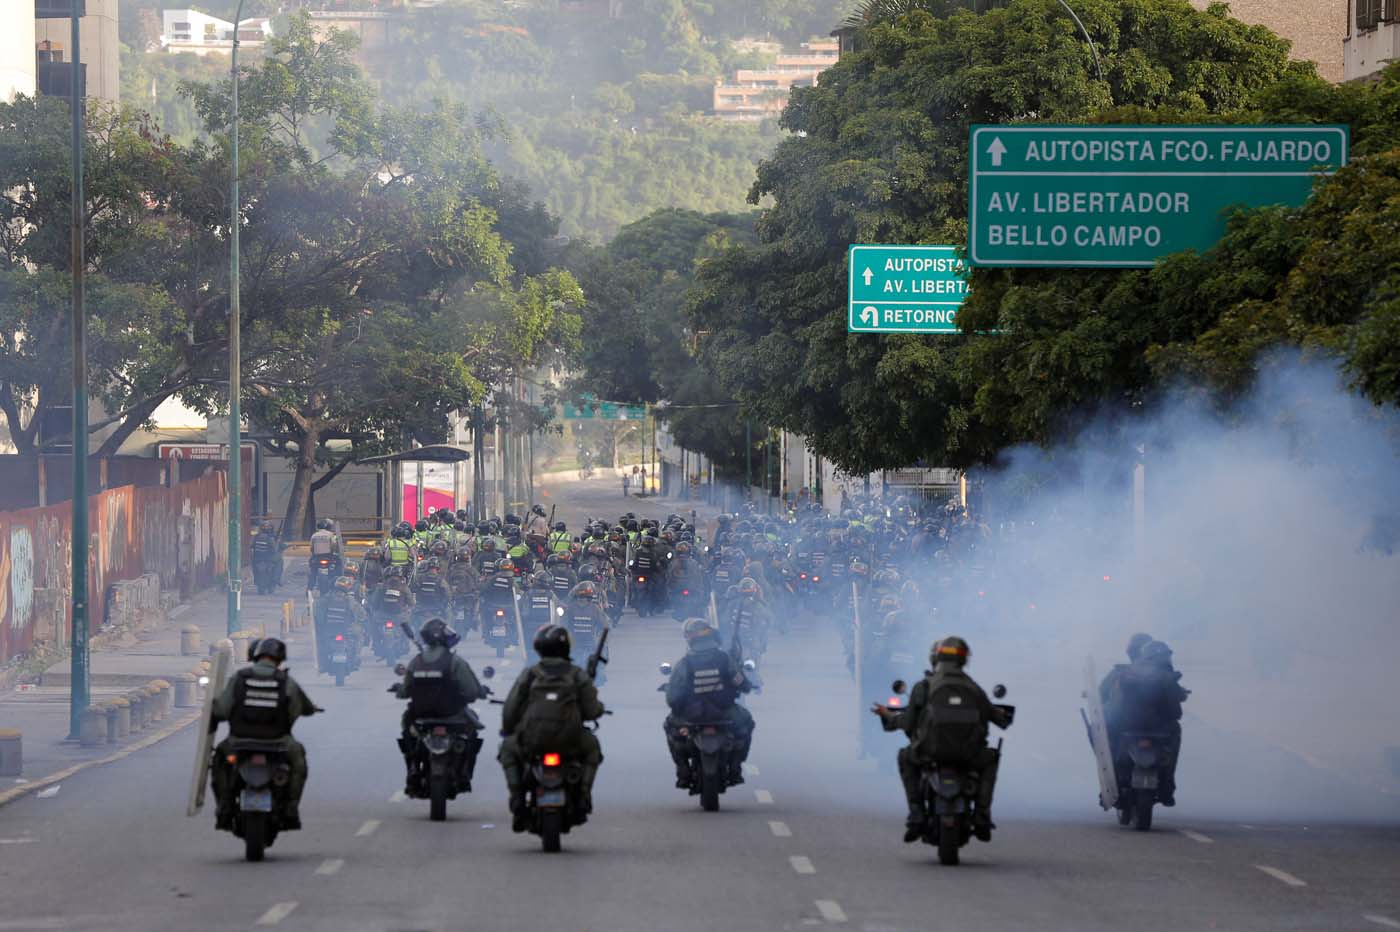 Security forces ride on motorcycles during a rally against Venezuela's President Nicolas Maduro's government in Caracas, Venezuela, June 26, 2017. REUTERS/Ivan Alvarado